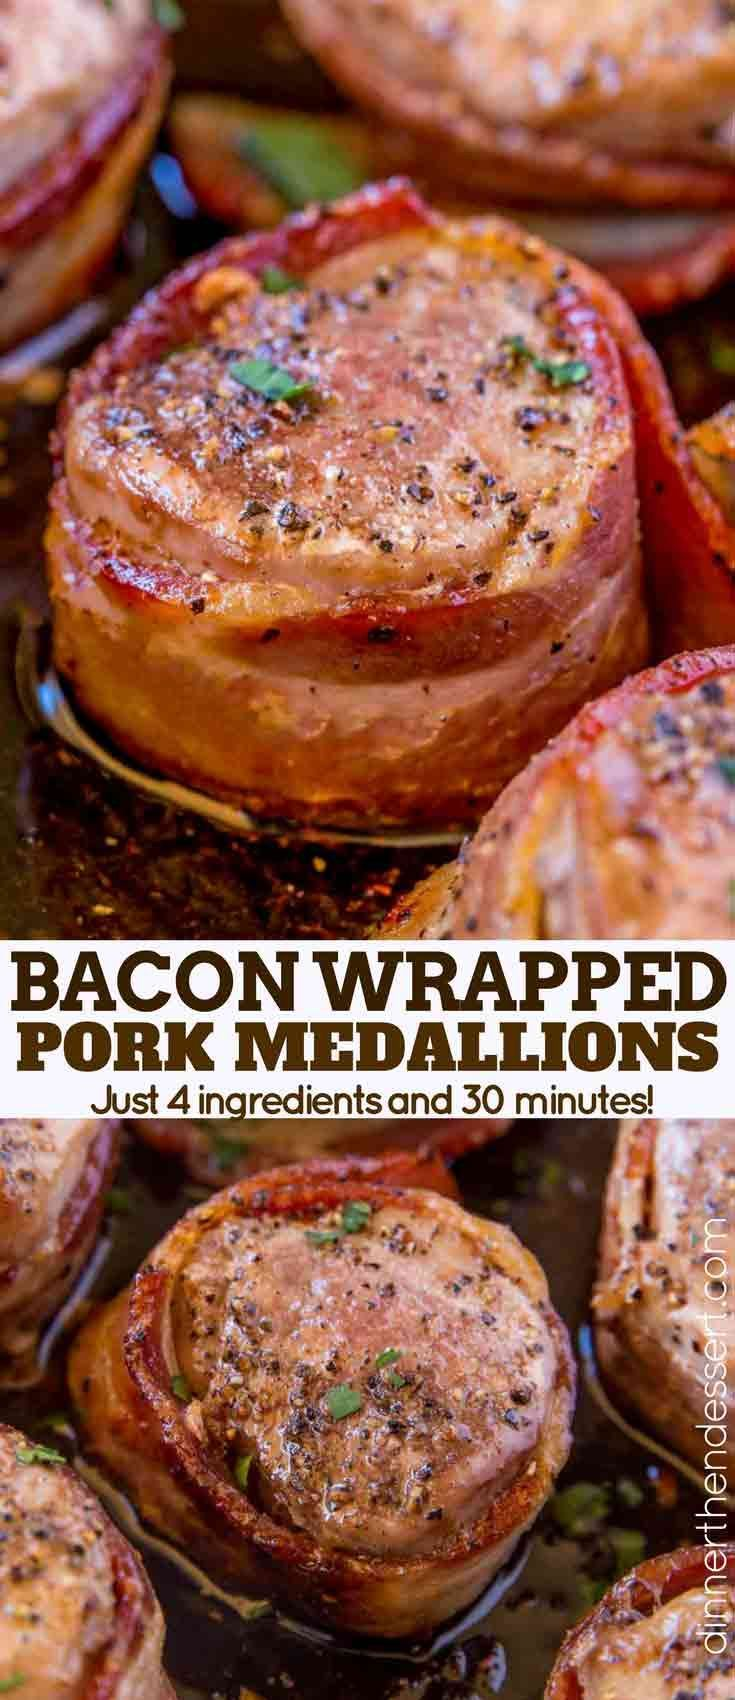 Wrapped Pork Medallions are an impressive dinner option for your regular weeknight rotation that's impressive enough to serve at your fanciest party.Bacon Wrapped Pork Medallions are an impressive dinner option for your regular weeknight rotation that's impressive enough to serve at your fanciest party.